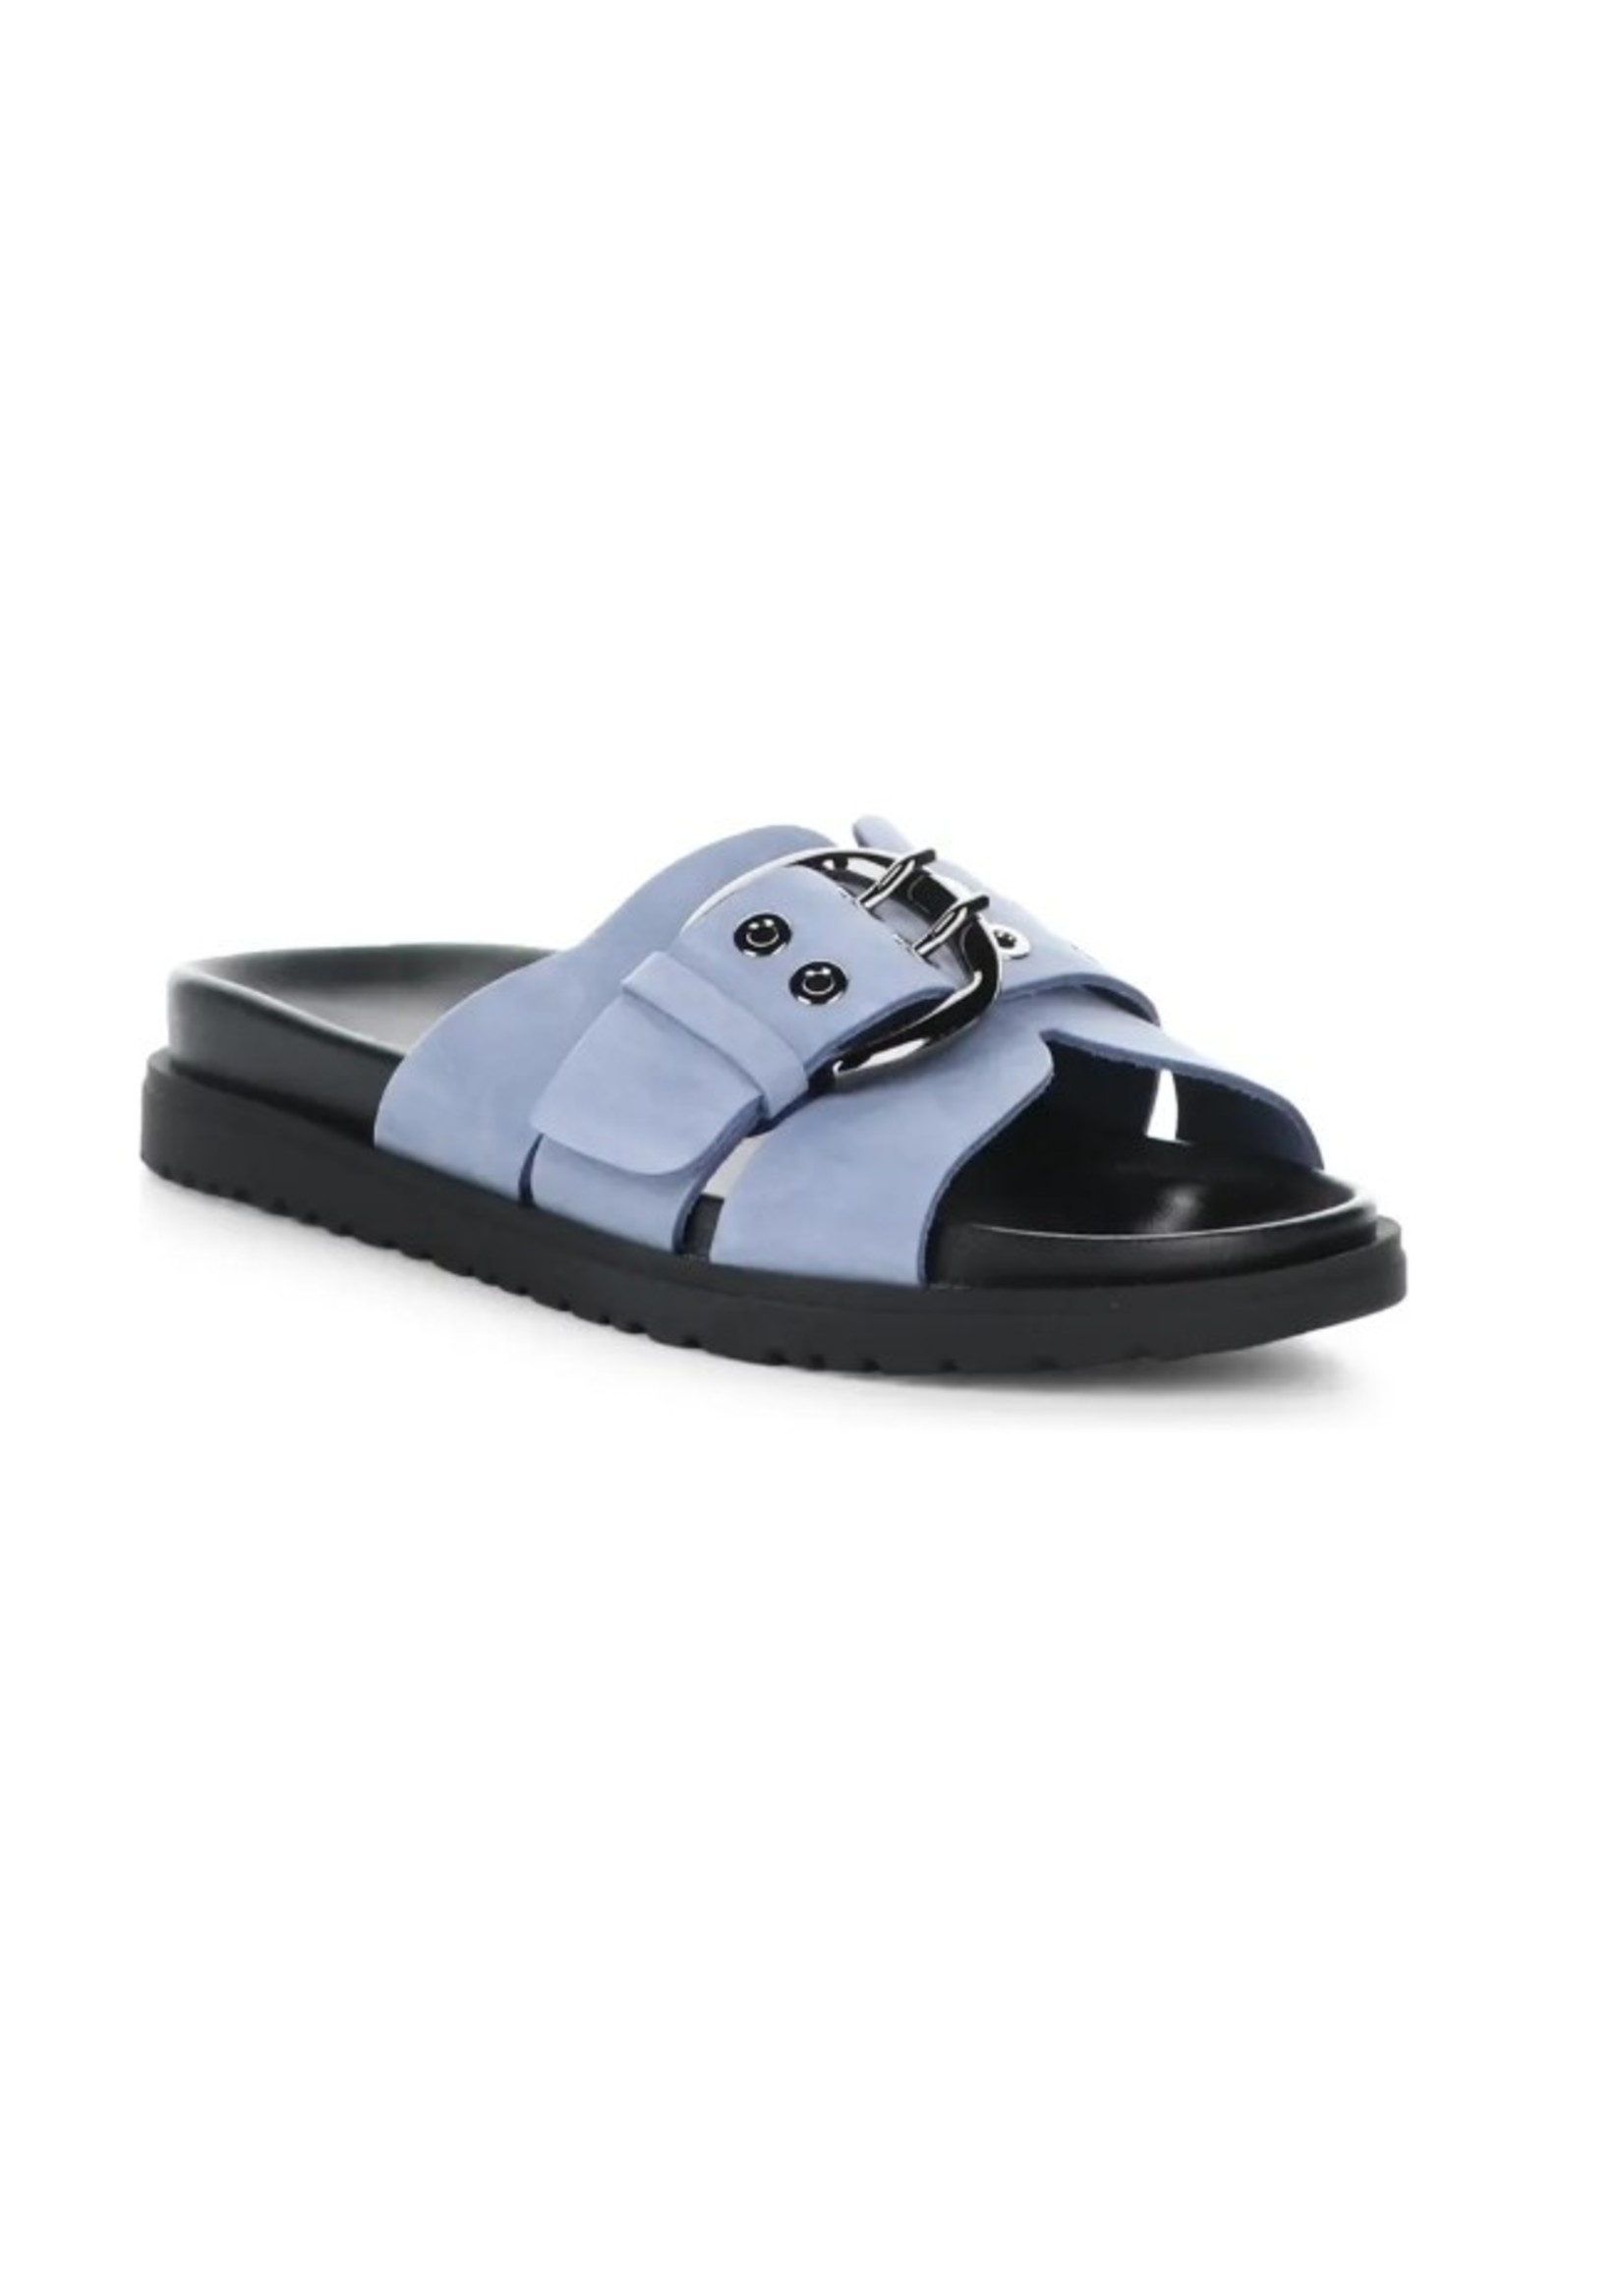 Bos & Co. Salerno Buckled Sandals